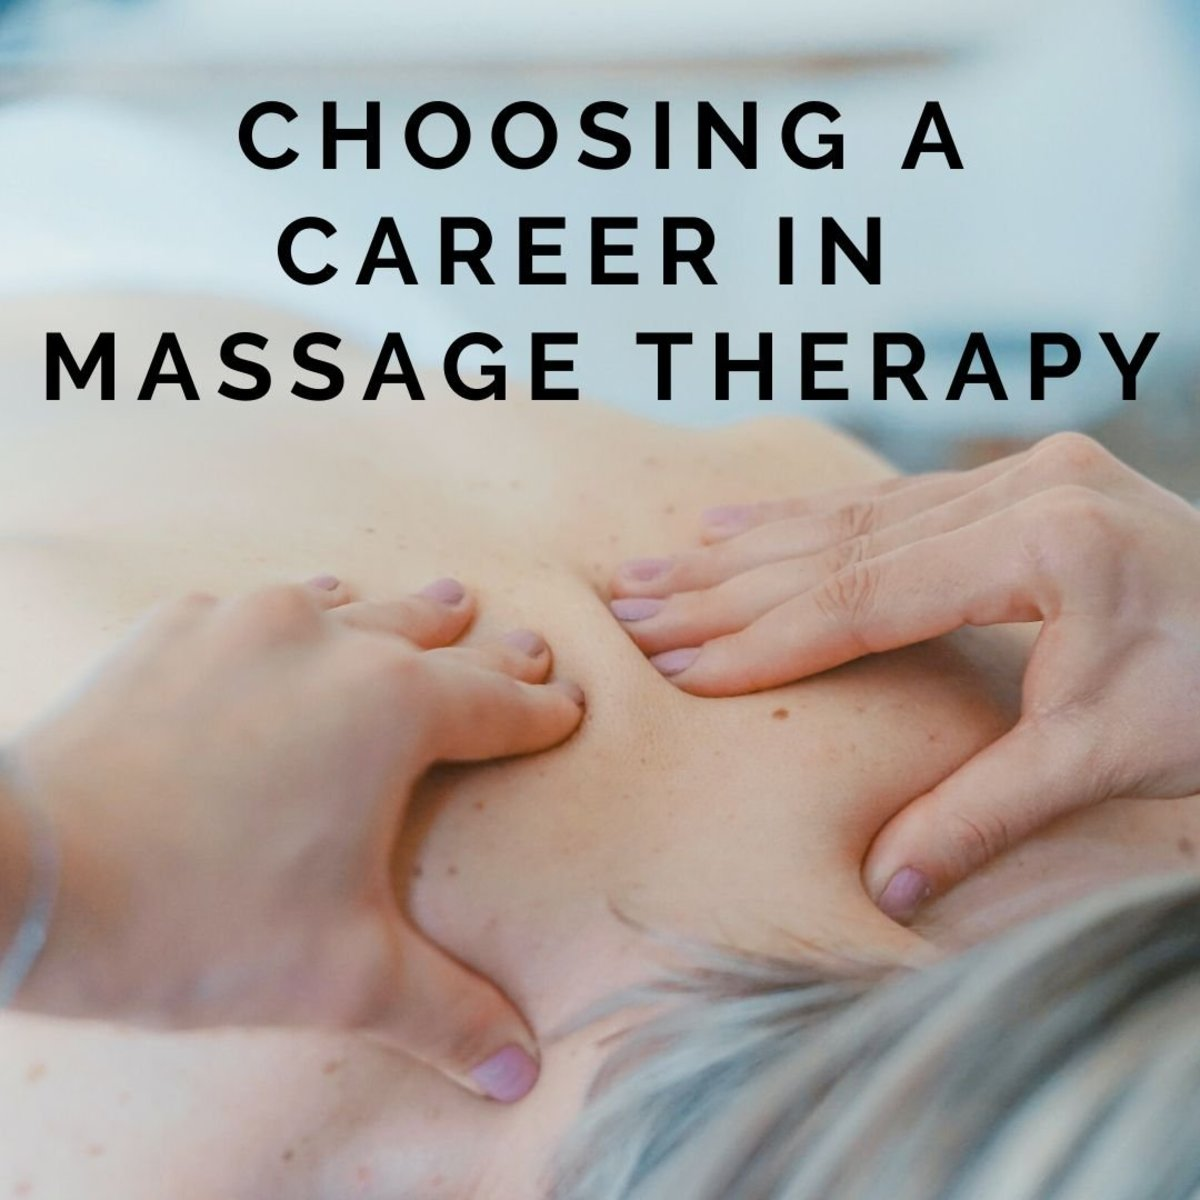 In this article, you'll learn the pros and cons of pursuing a career in massage therapy.